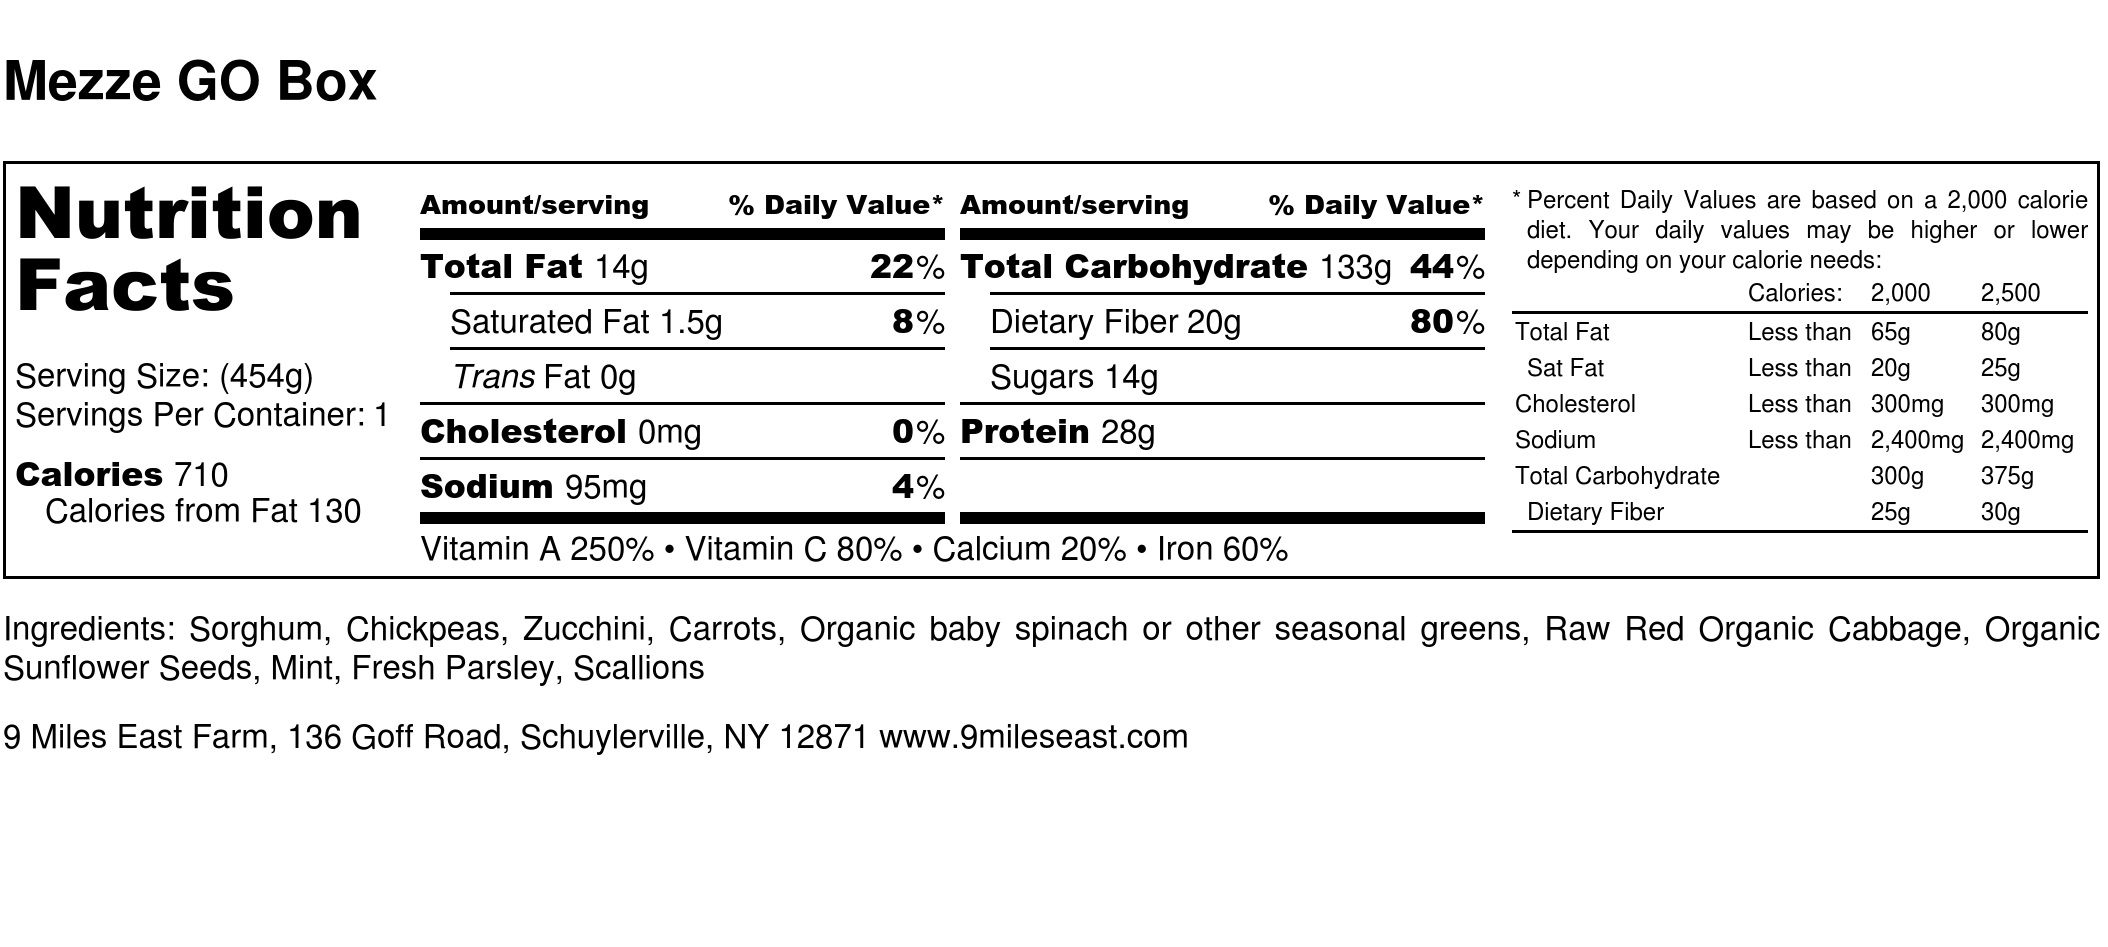 Mezze GO Box - Nutrition Label.jpg